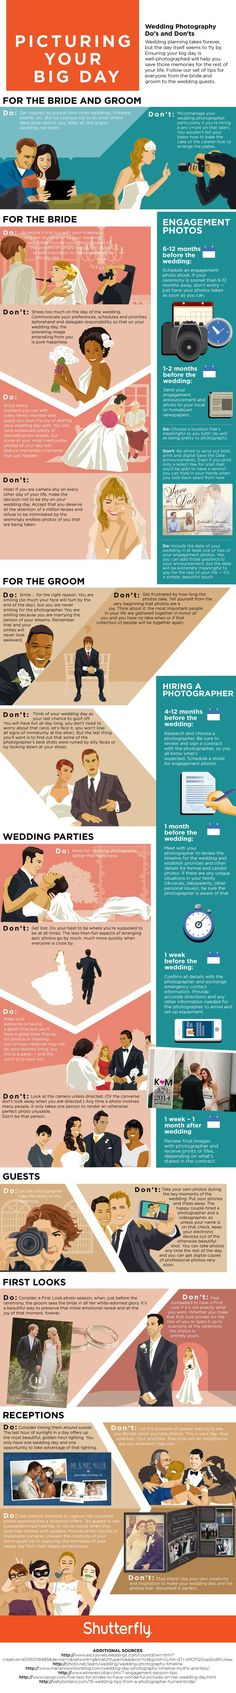 Plan Out a Picture Perfect Wedding Day With These Handy Photography Tips (INFOGRAPHIC)